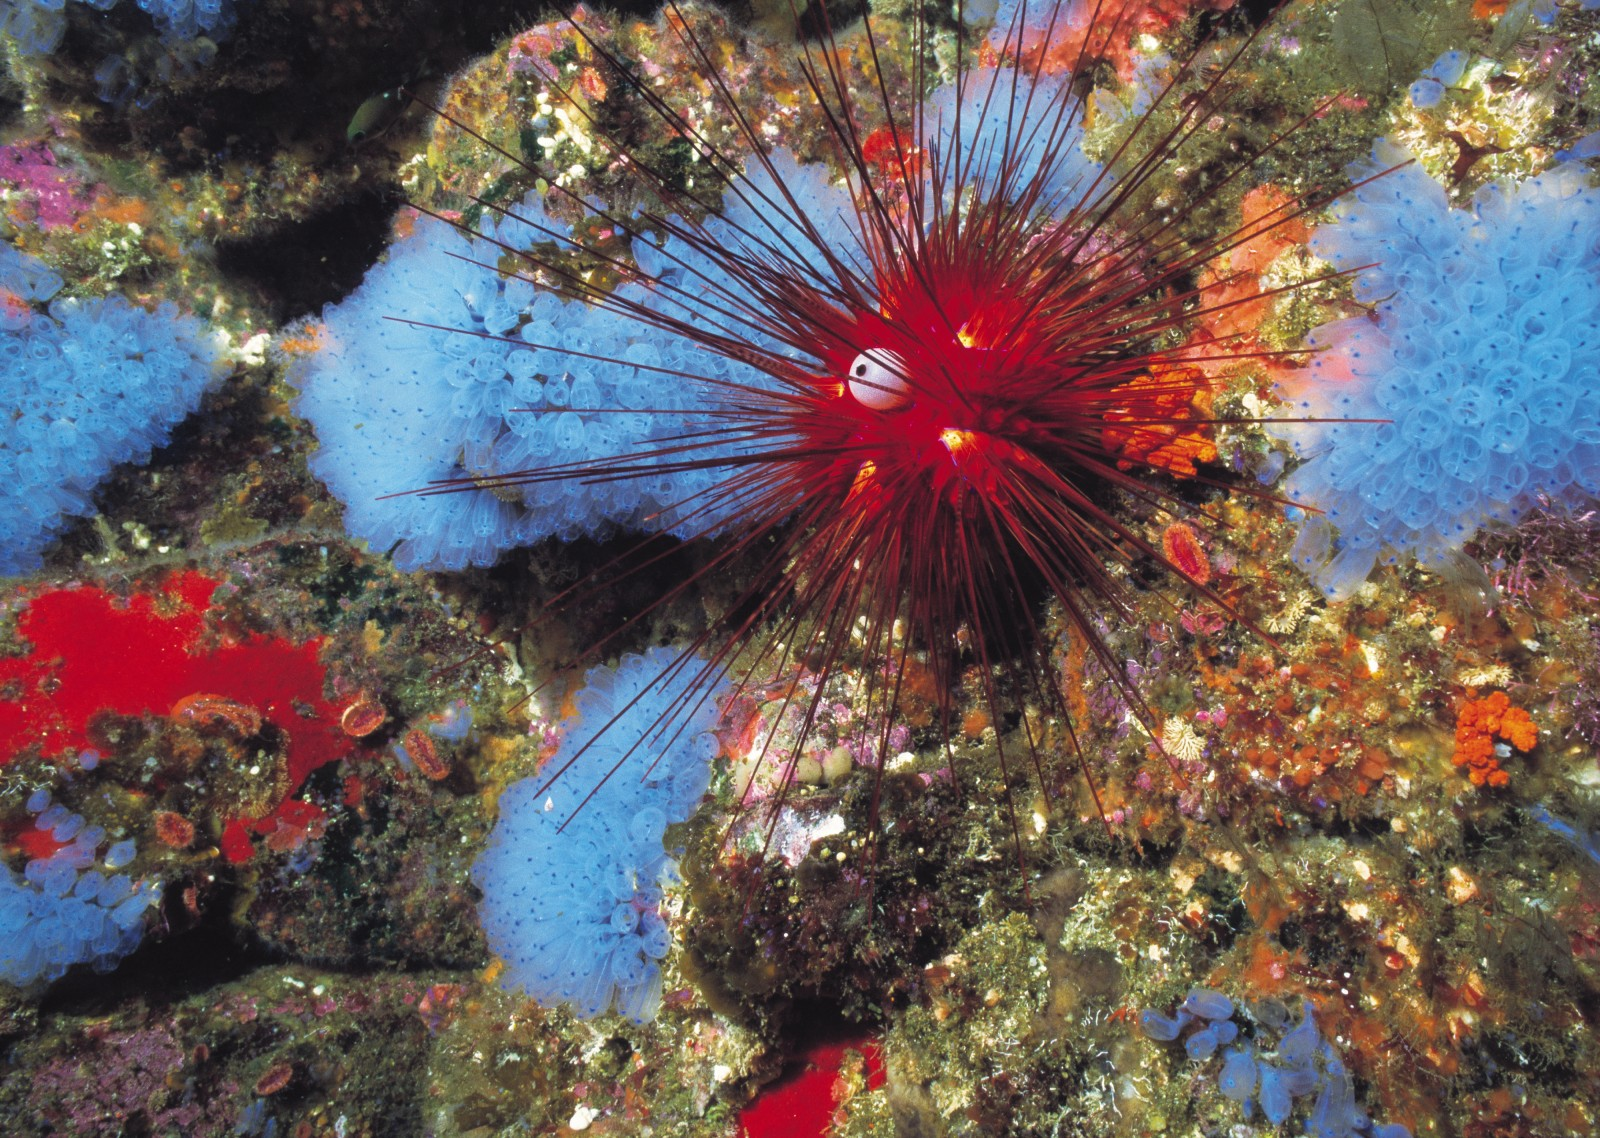 Both the needle-spined Diadema sea urchin and the pale colonial ascidian Clavellina are uncommon species, here photographed near White Island.